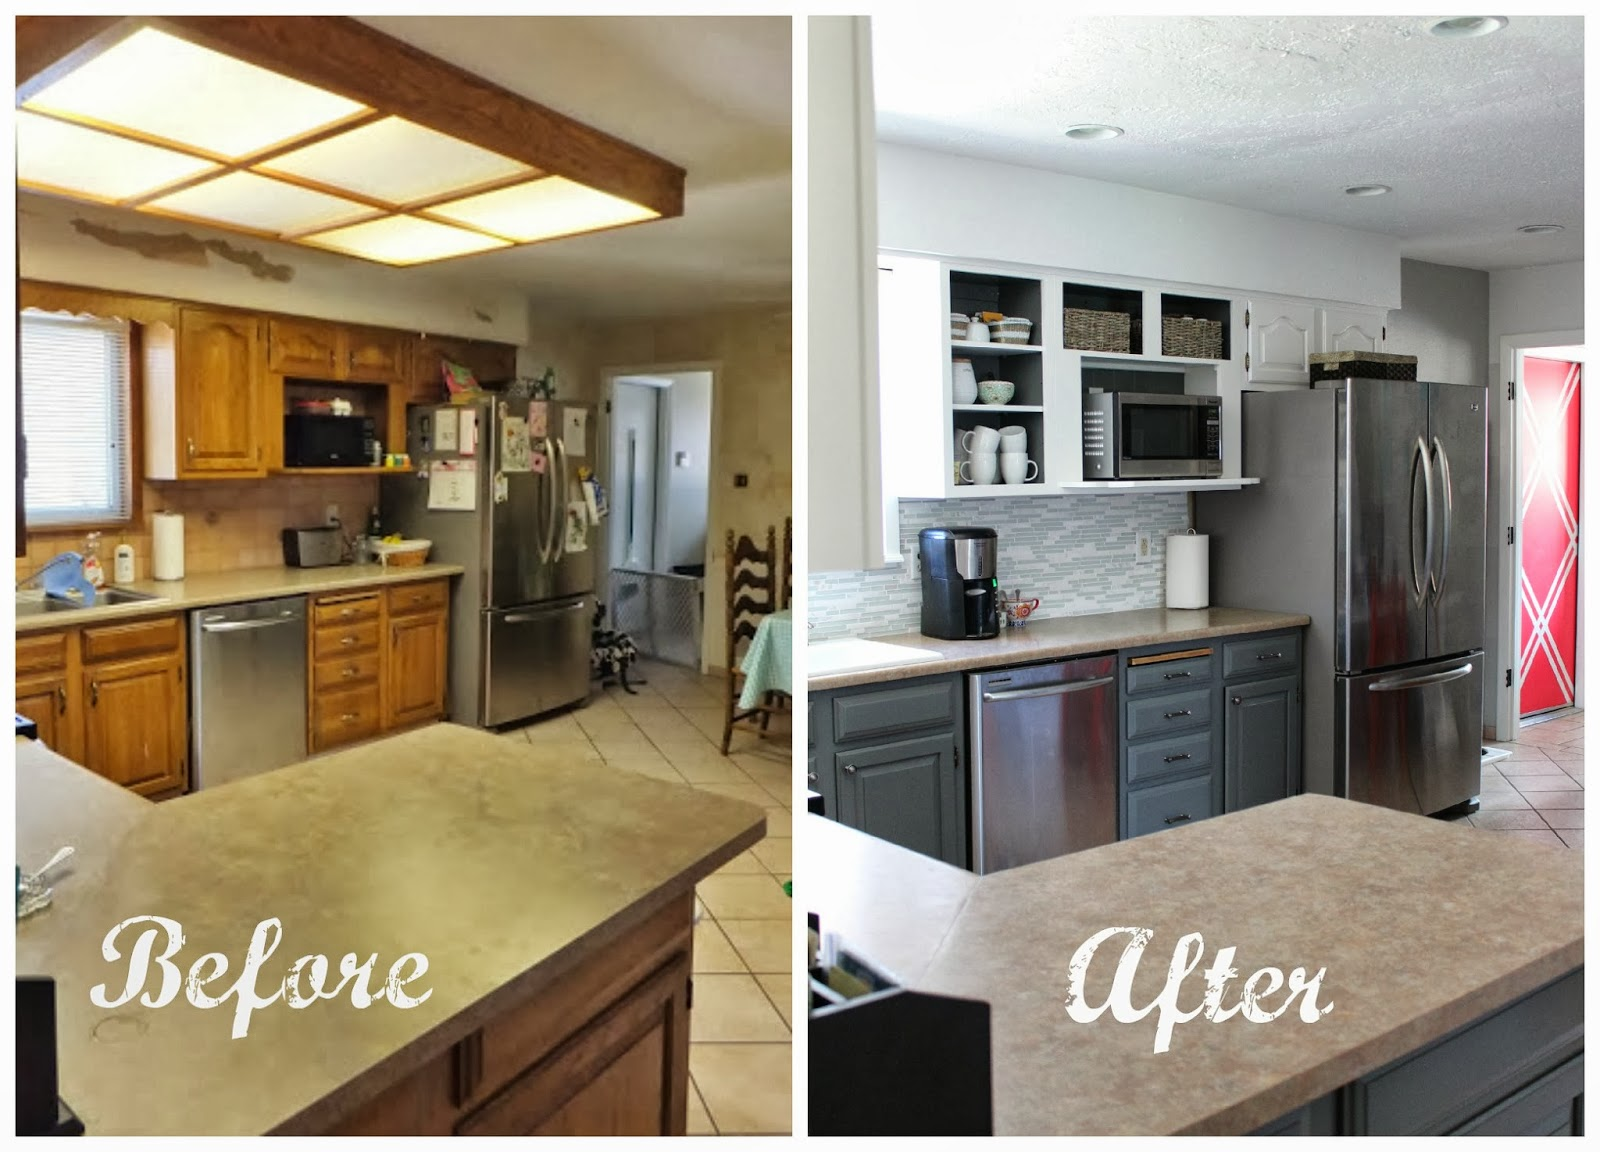 Kitchen Makeovers On A Budget Before And After Awesome Remodelaholic  Grey And White Kitchen Makeover Inspiration Design